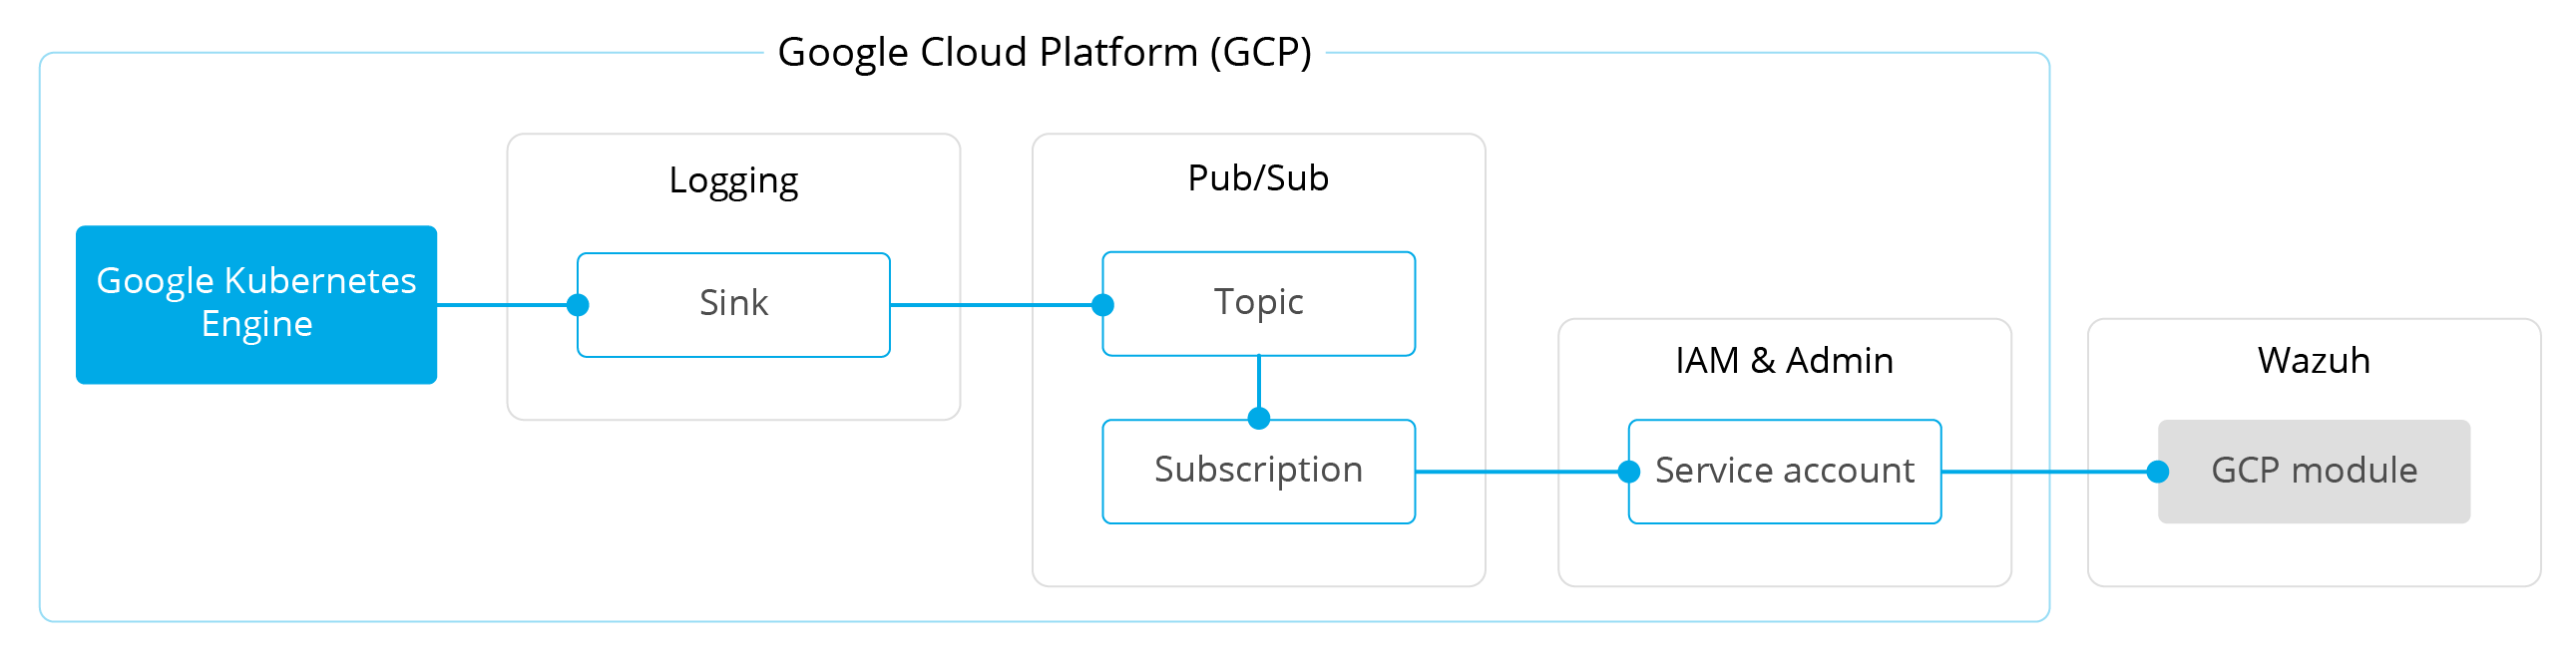 Google Cloud to Wazuh data flow